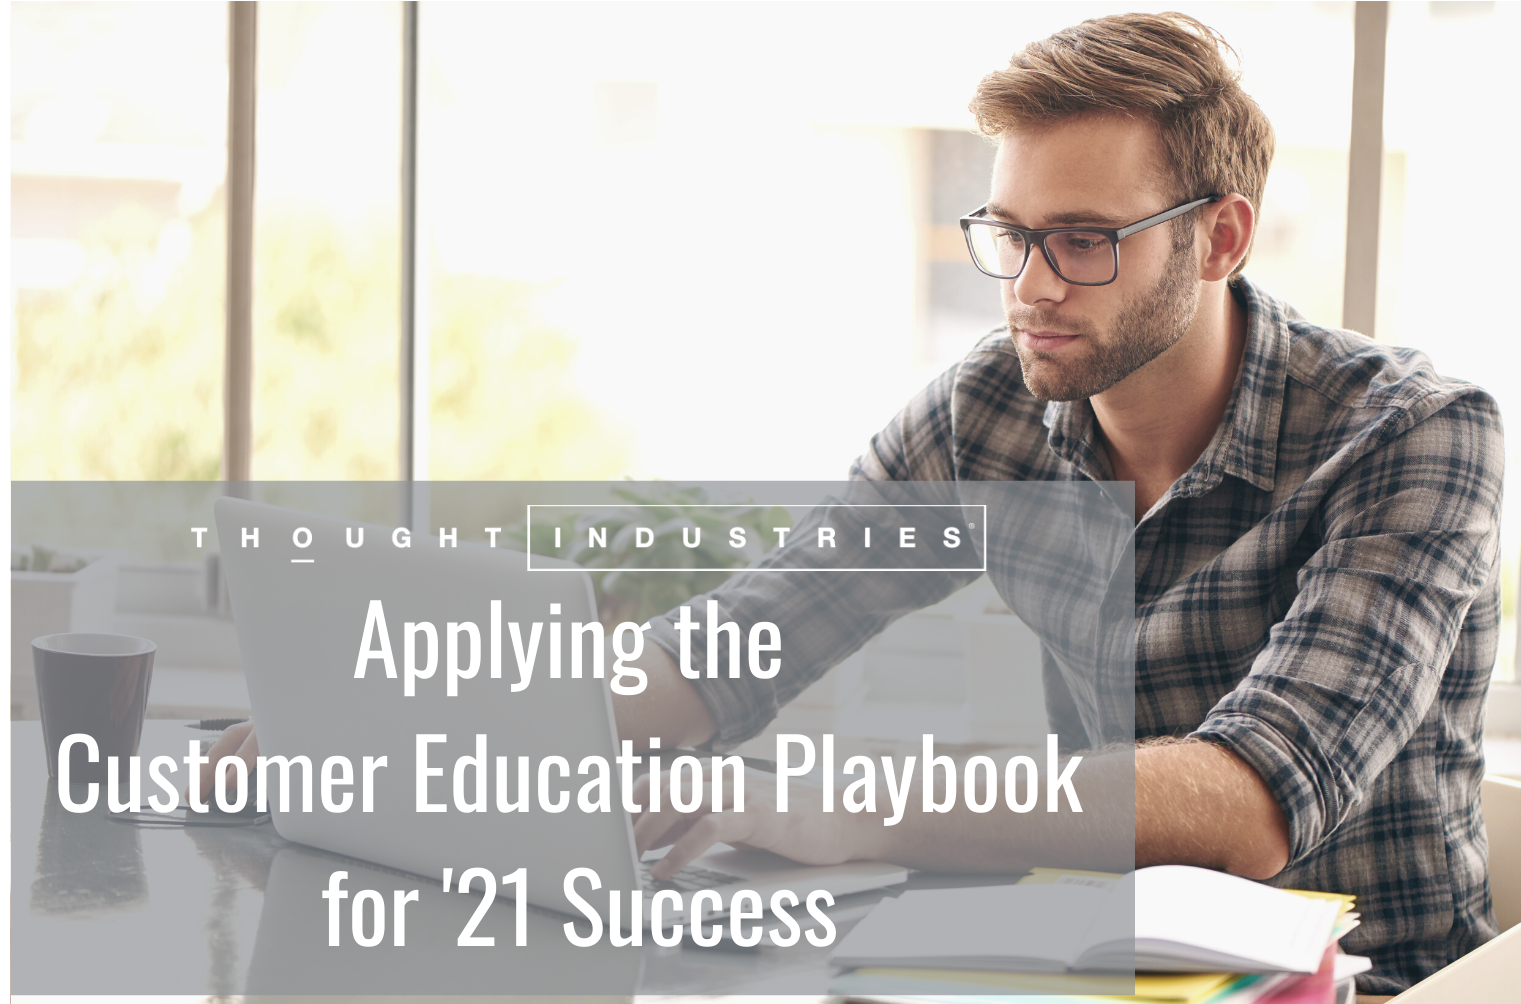 Applying the Customer Education Playbook for 21 Success-1